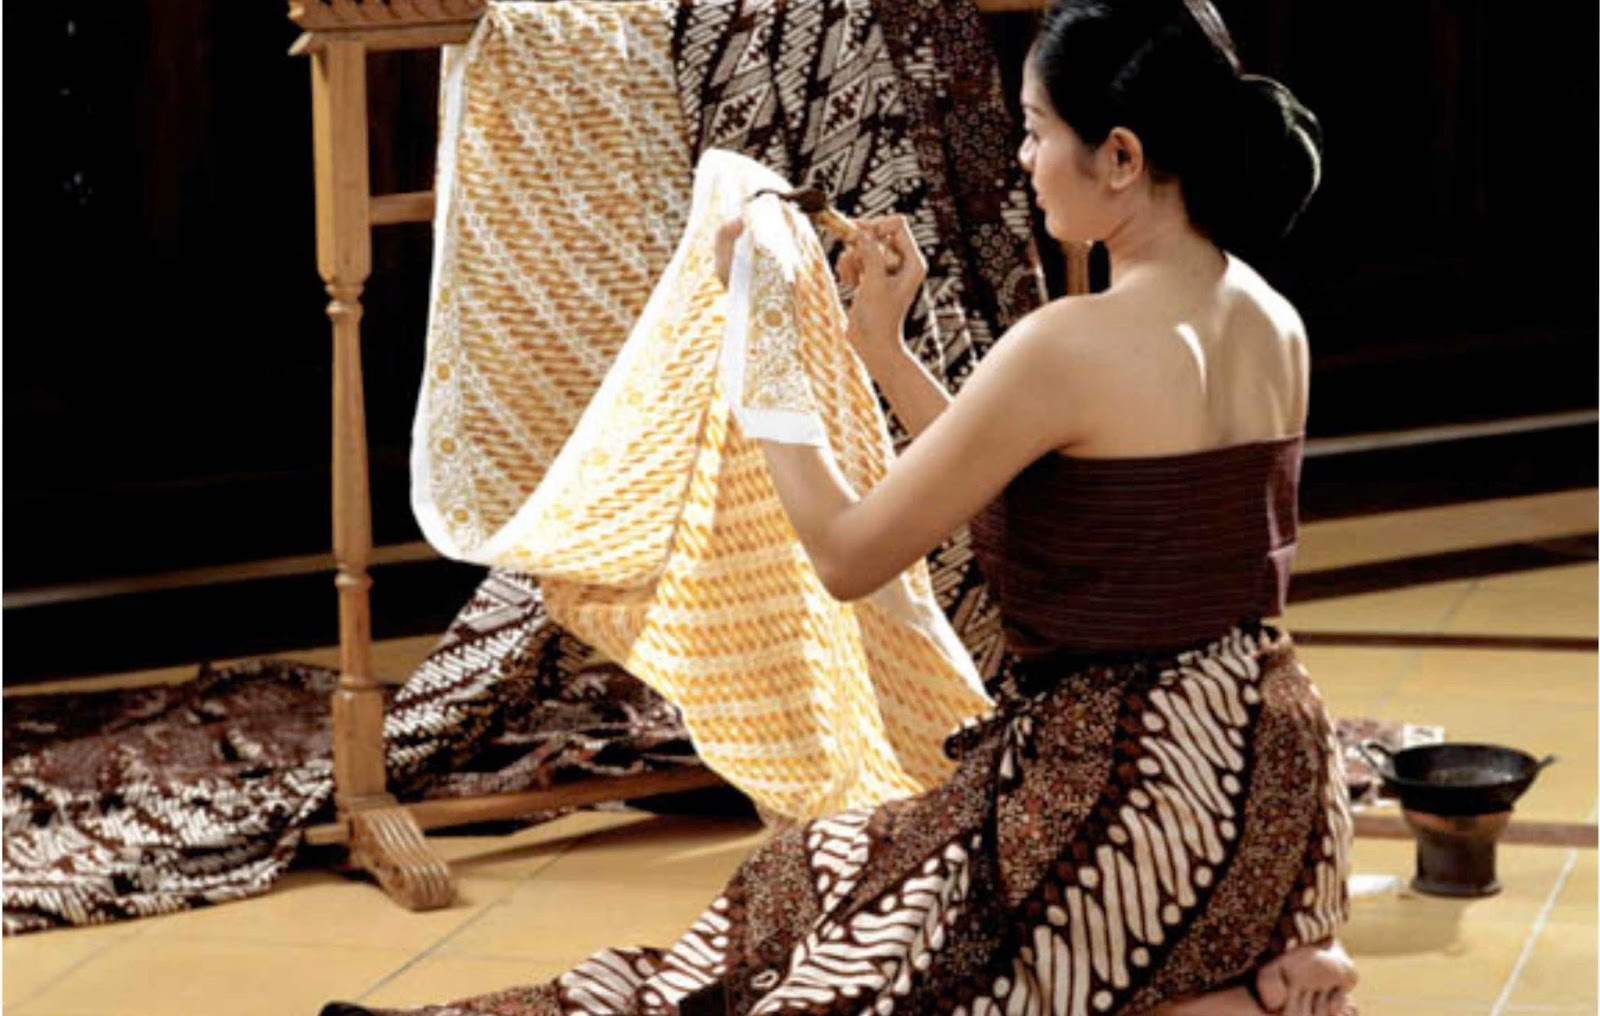 Batik is known the world over as a traditional form of clothing, which has motifs that represent Indonesia | Google Images